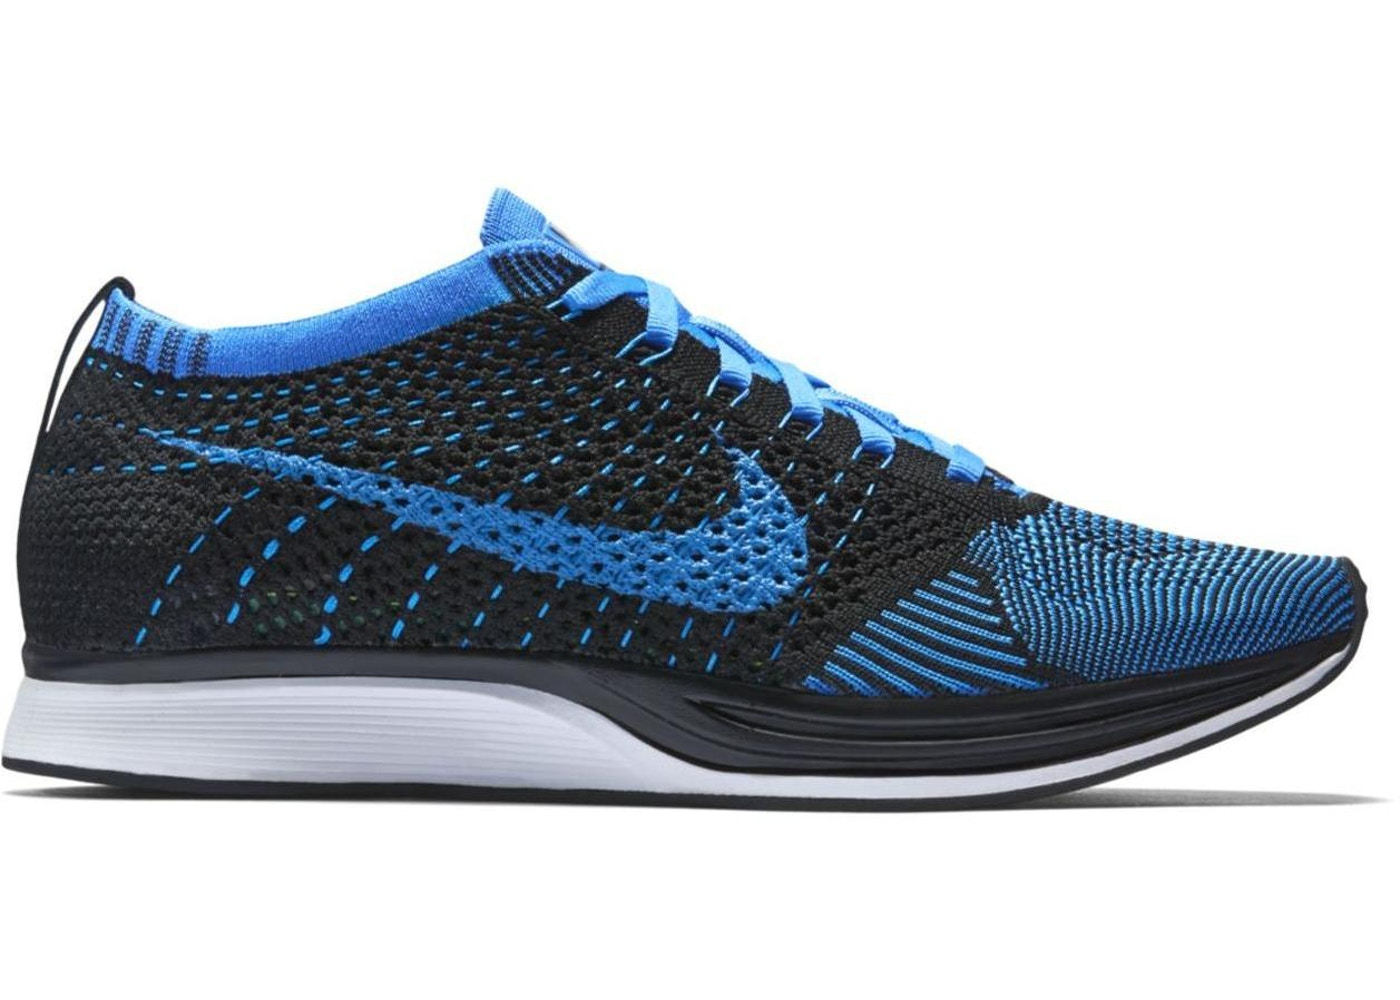 36fd2629818d7 Nike Flyknit Racer Black Photo Blue - 526628-001